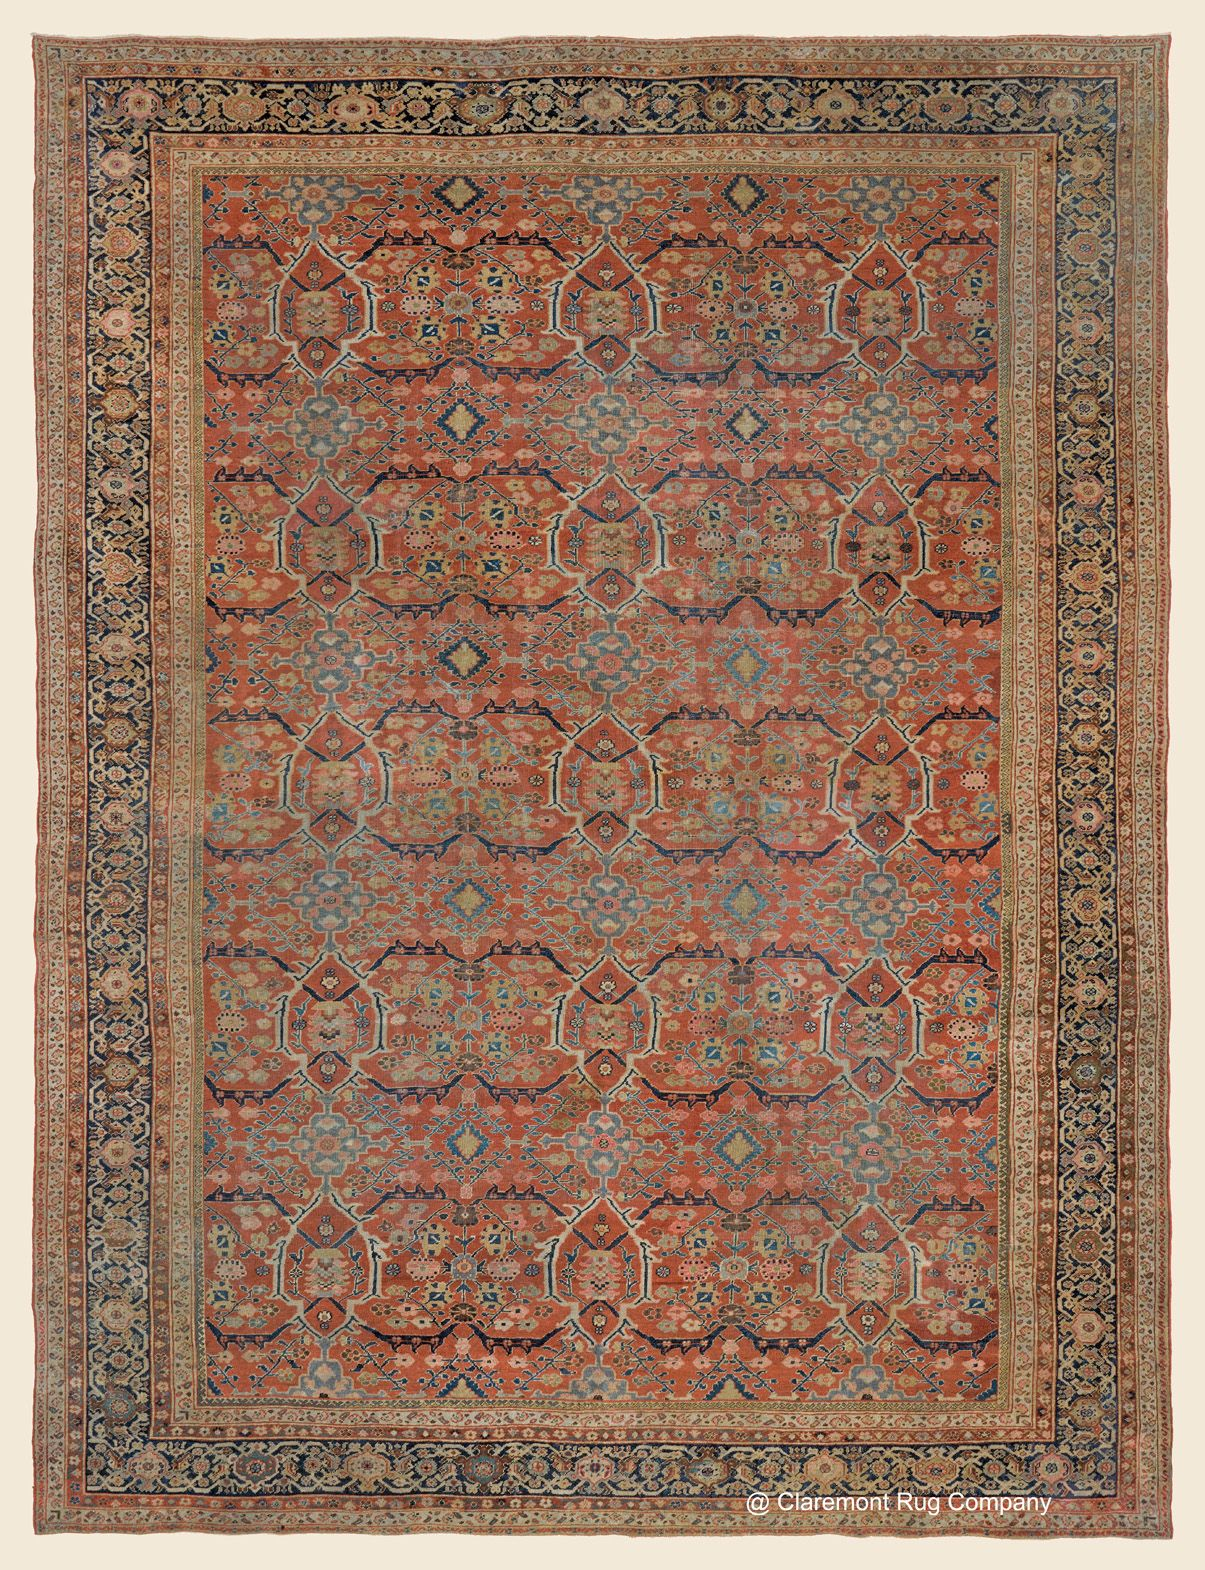 Sultanabad 12 3 X 15 10 3rd Quarter 19th Century West Central Persian Antique Rug Claremont Rug Company Cli Rugs Claremont Rug Company Rugs On Carpet